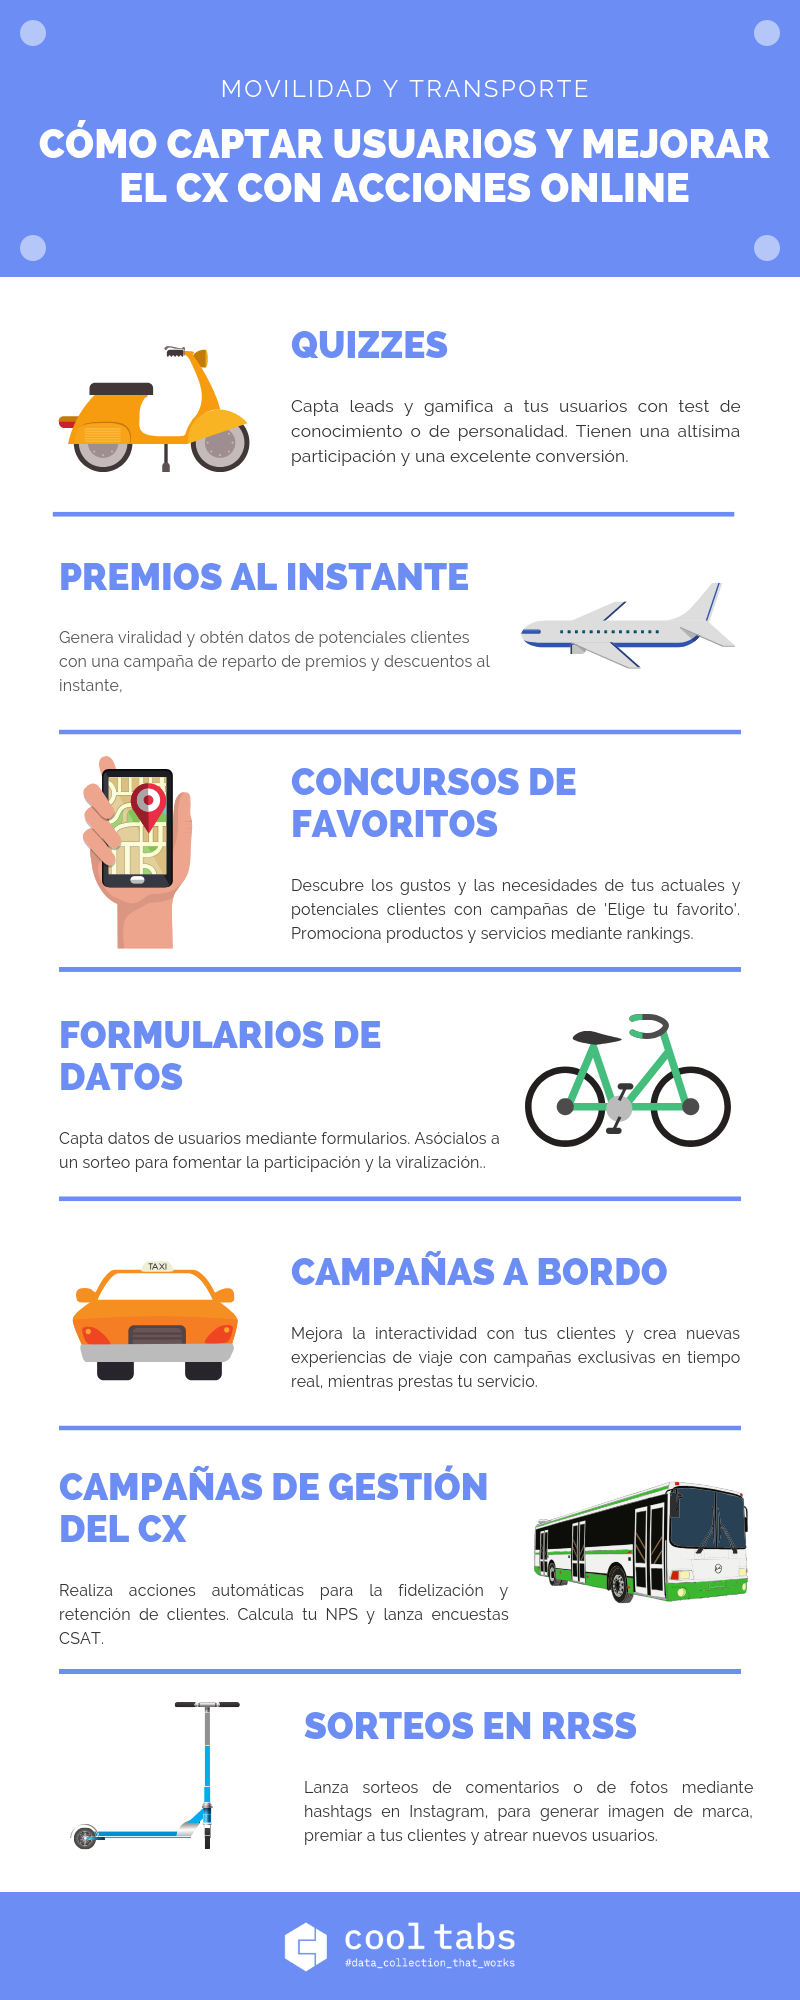 movilidad y transporte: acciones de marketing digital